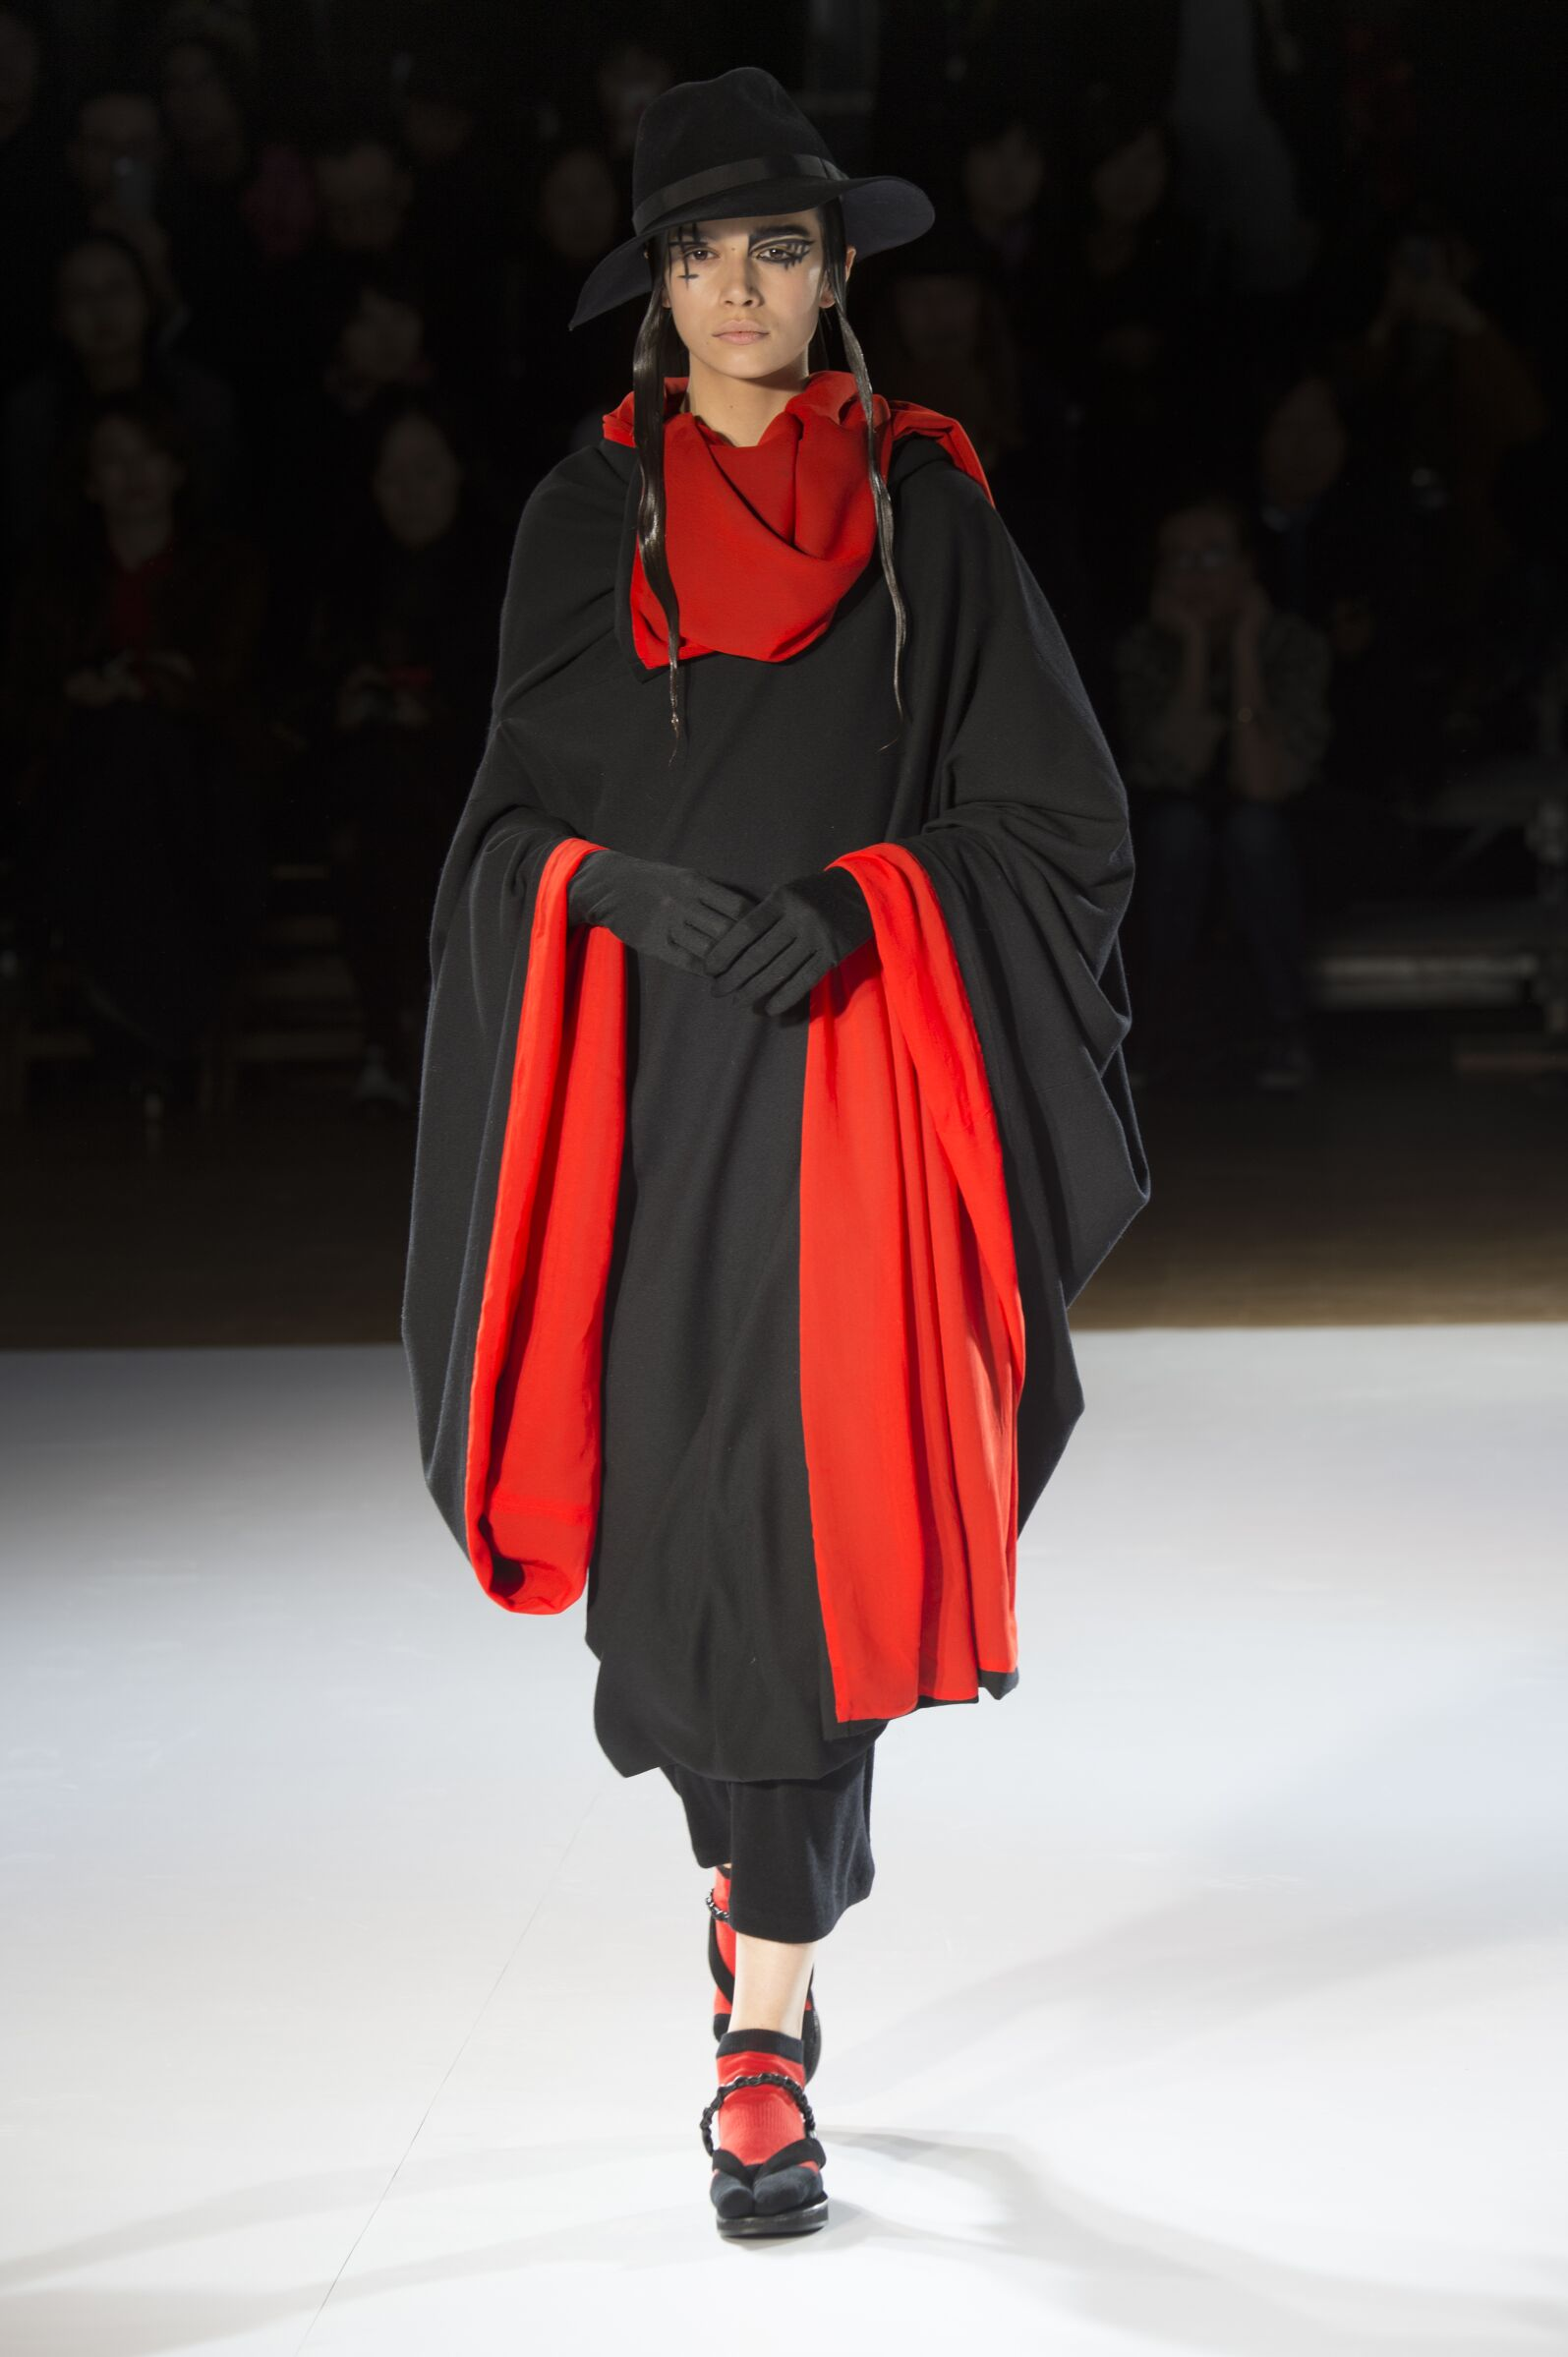 Yohji Yamamoto Fall Winter 2015 16 Womenswear Collection Paris Fashion Week Fashion Show